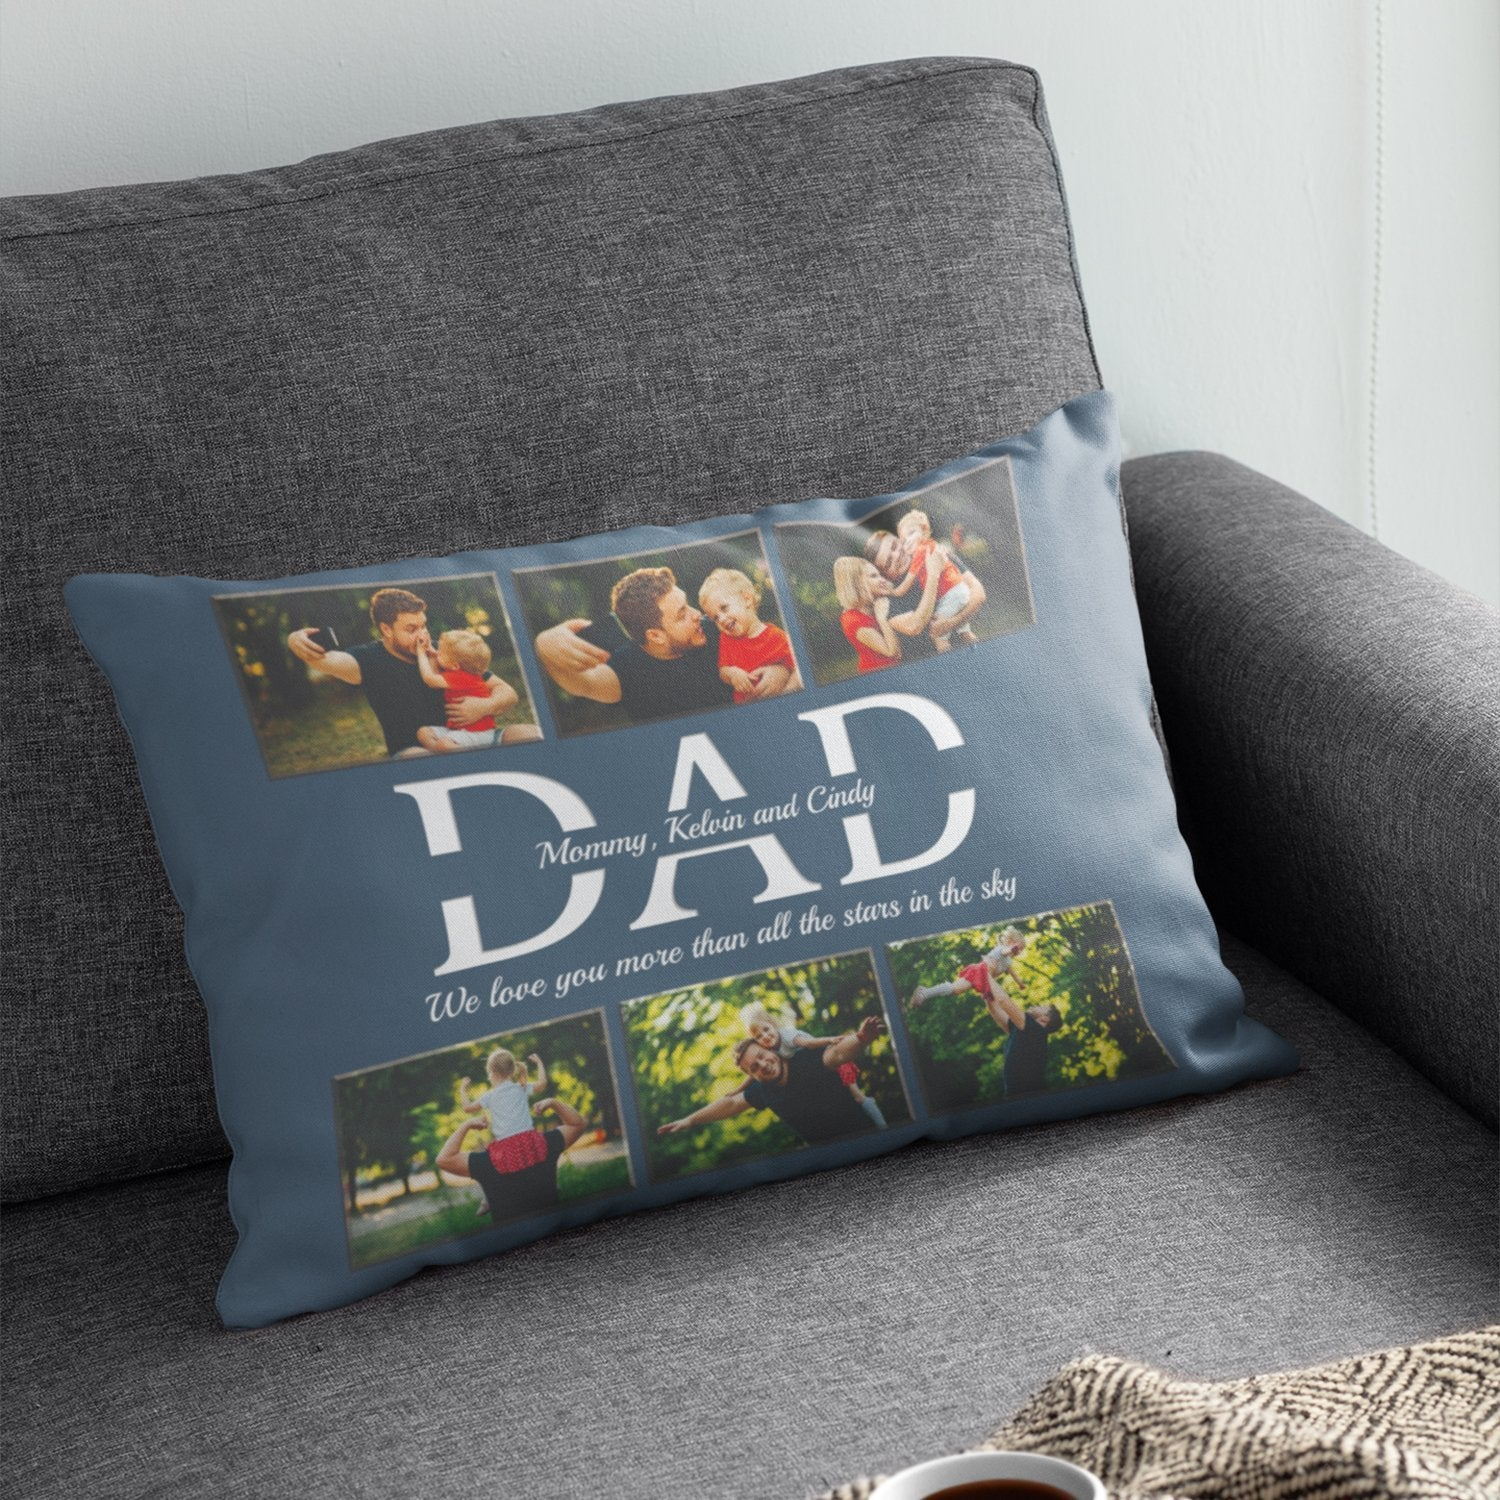 This Custom Dad Pillow will make a good match with the above Love Letter Blanket. Simply add names and your personal message to express that you love him very much. I bet this unusual gift will make him feels unique and special like the pillow you make for him.